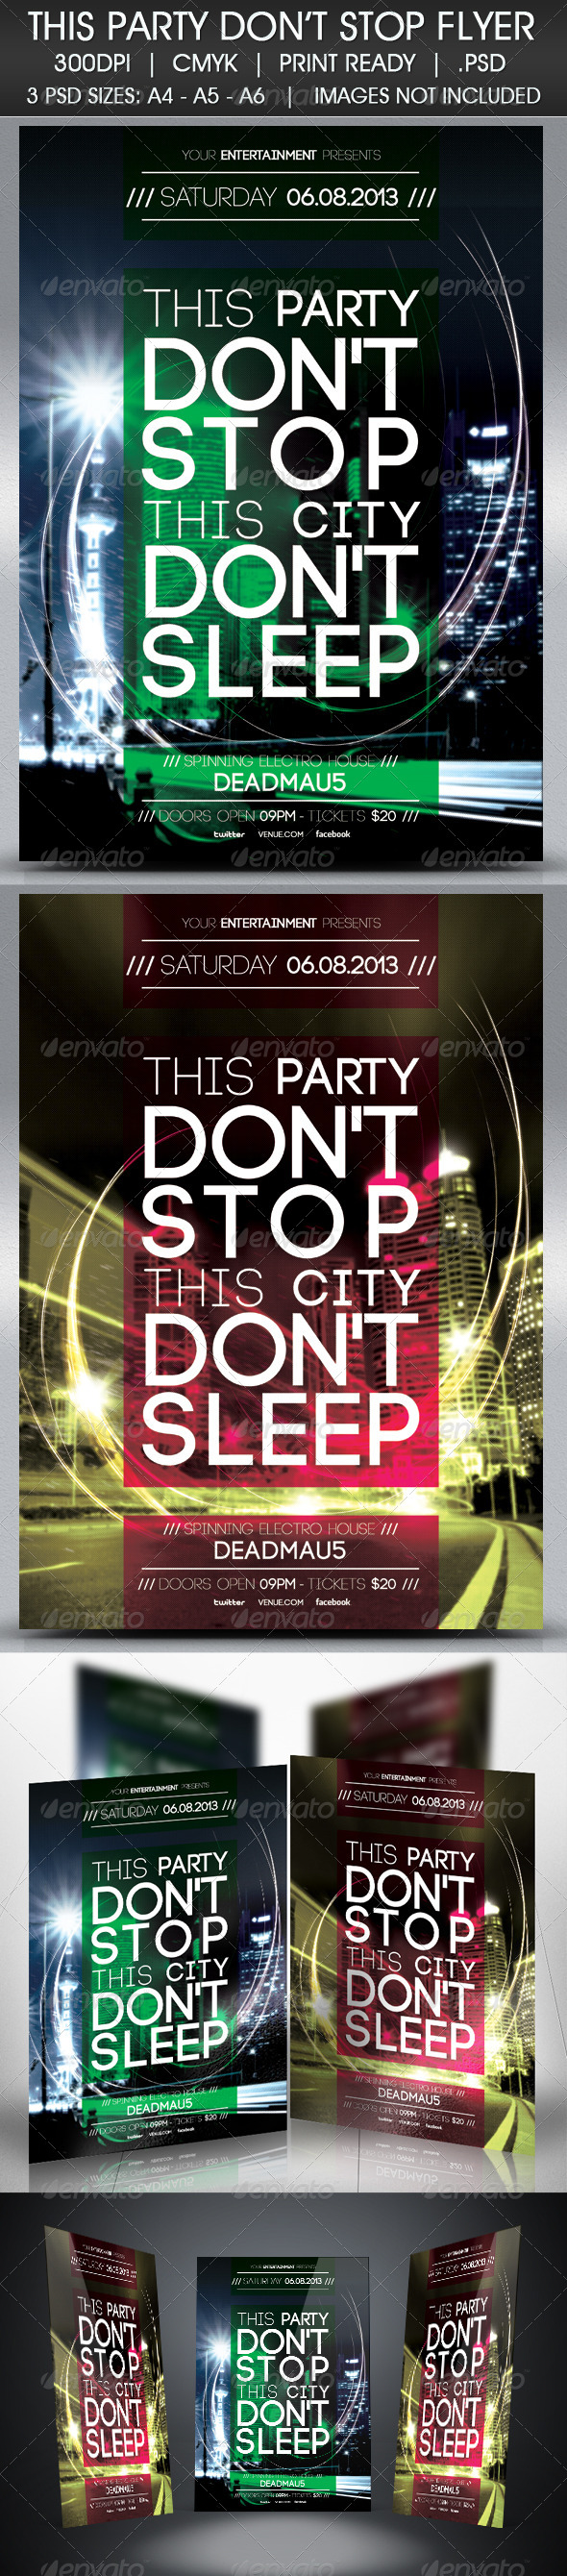 Party Don't Stop Flyer - Events Flyers